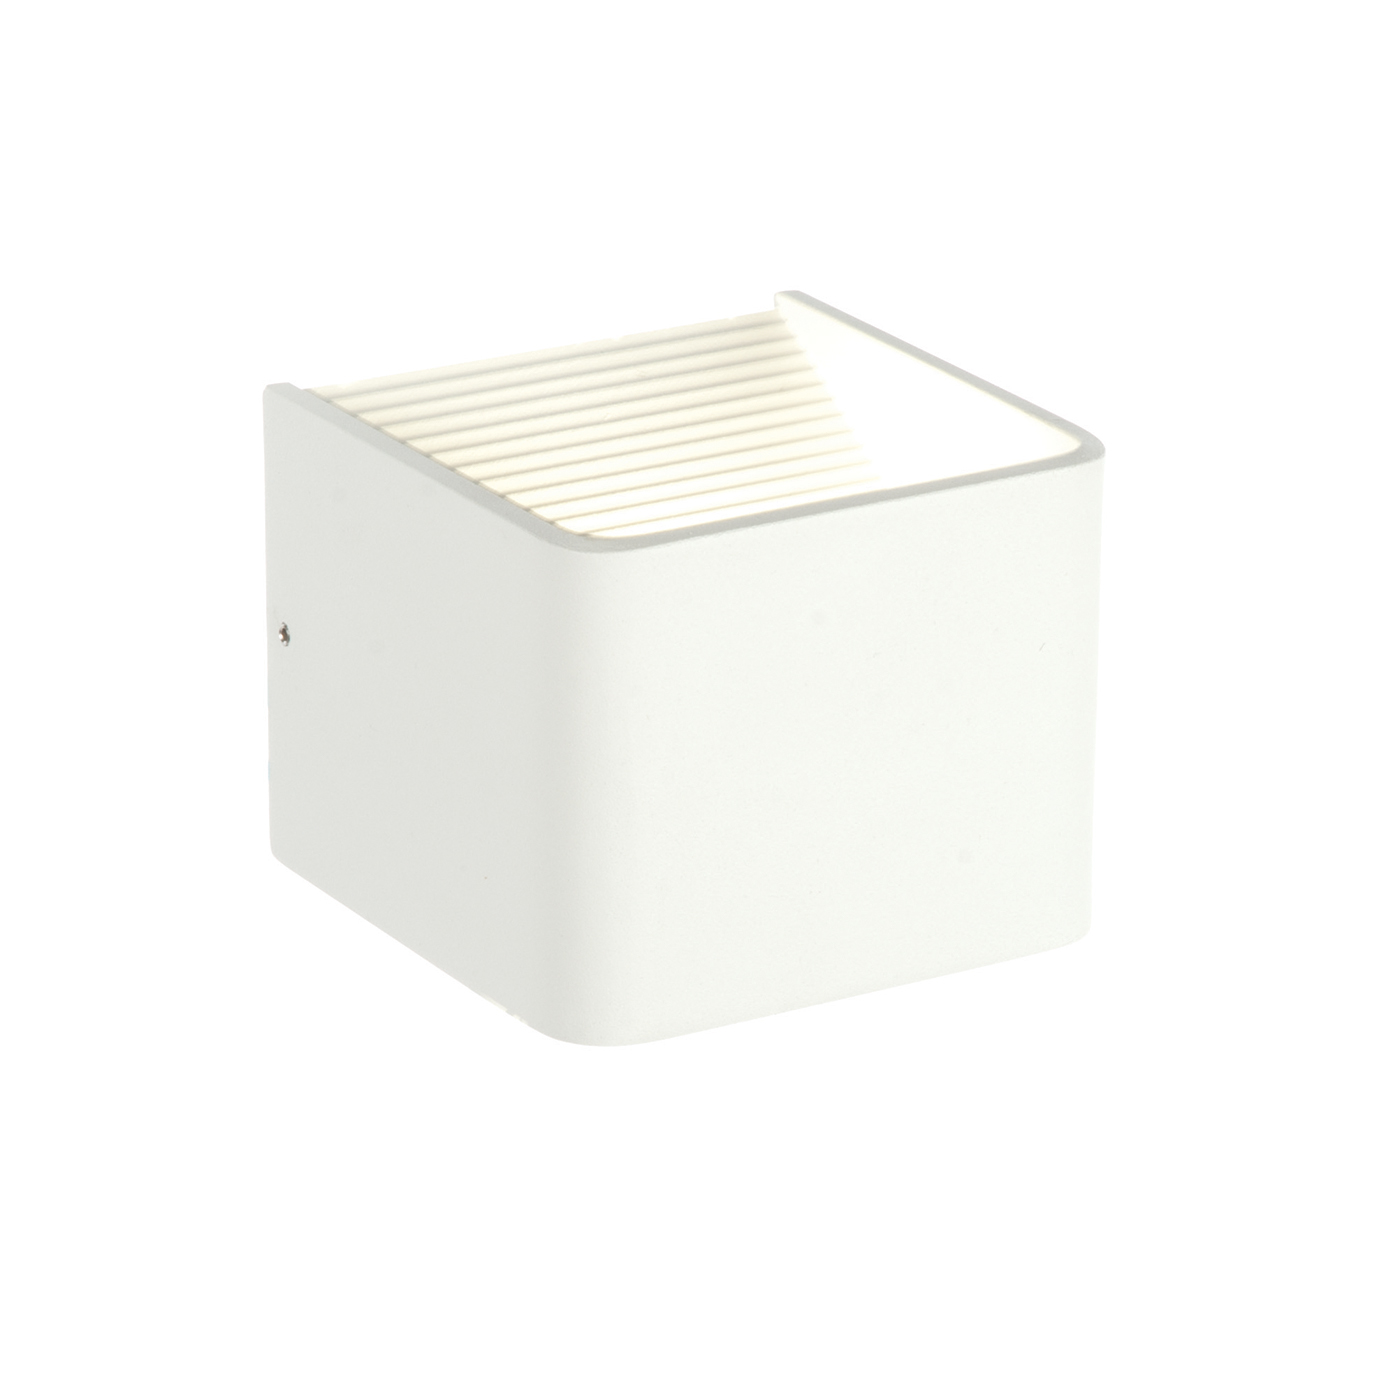 Endon Slater 1lt 100mm wall uplighter 6W Textured matt white paint clear acrylic Thumbnail 1